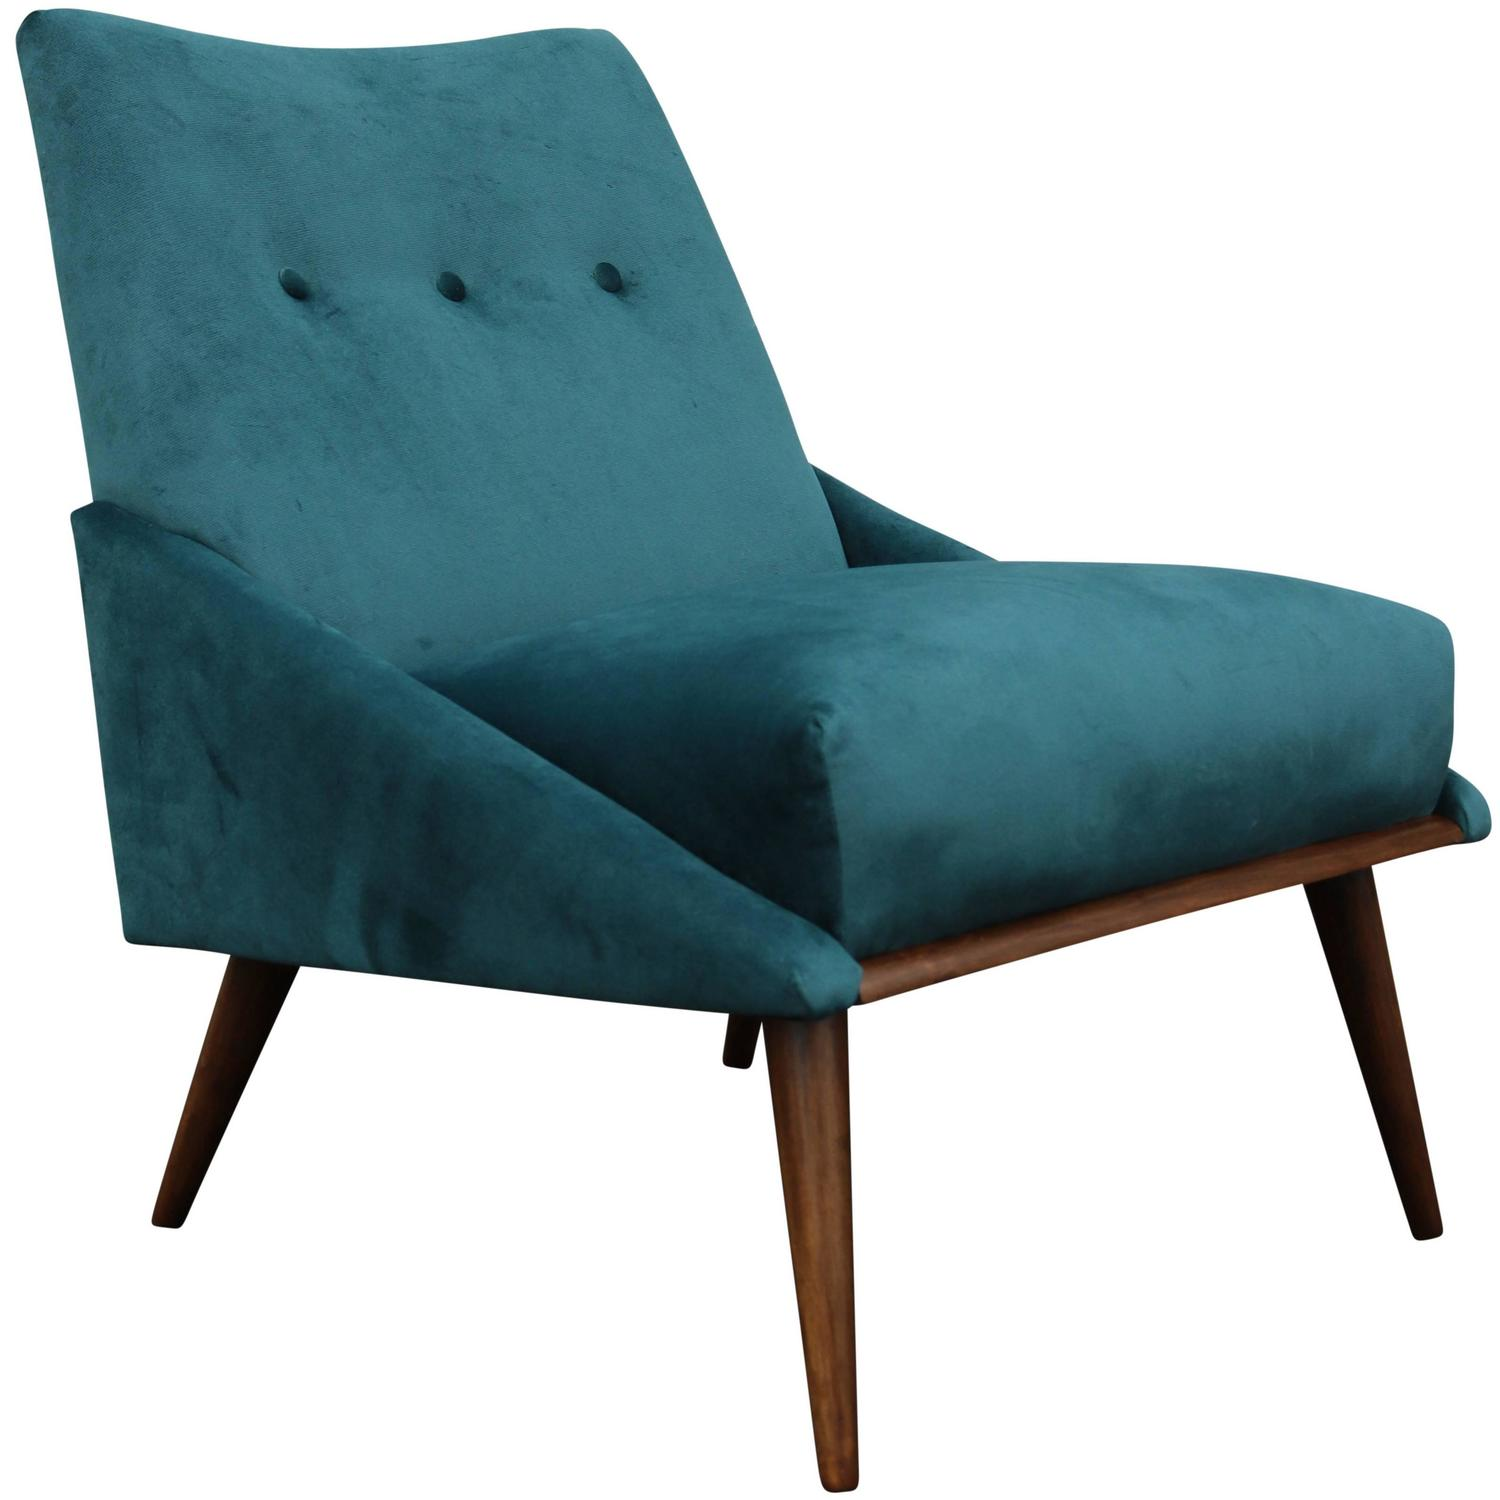 Peacock velvet mid century modern chair at 1stdibs Mid century chairs